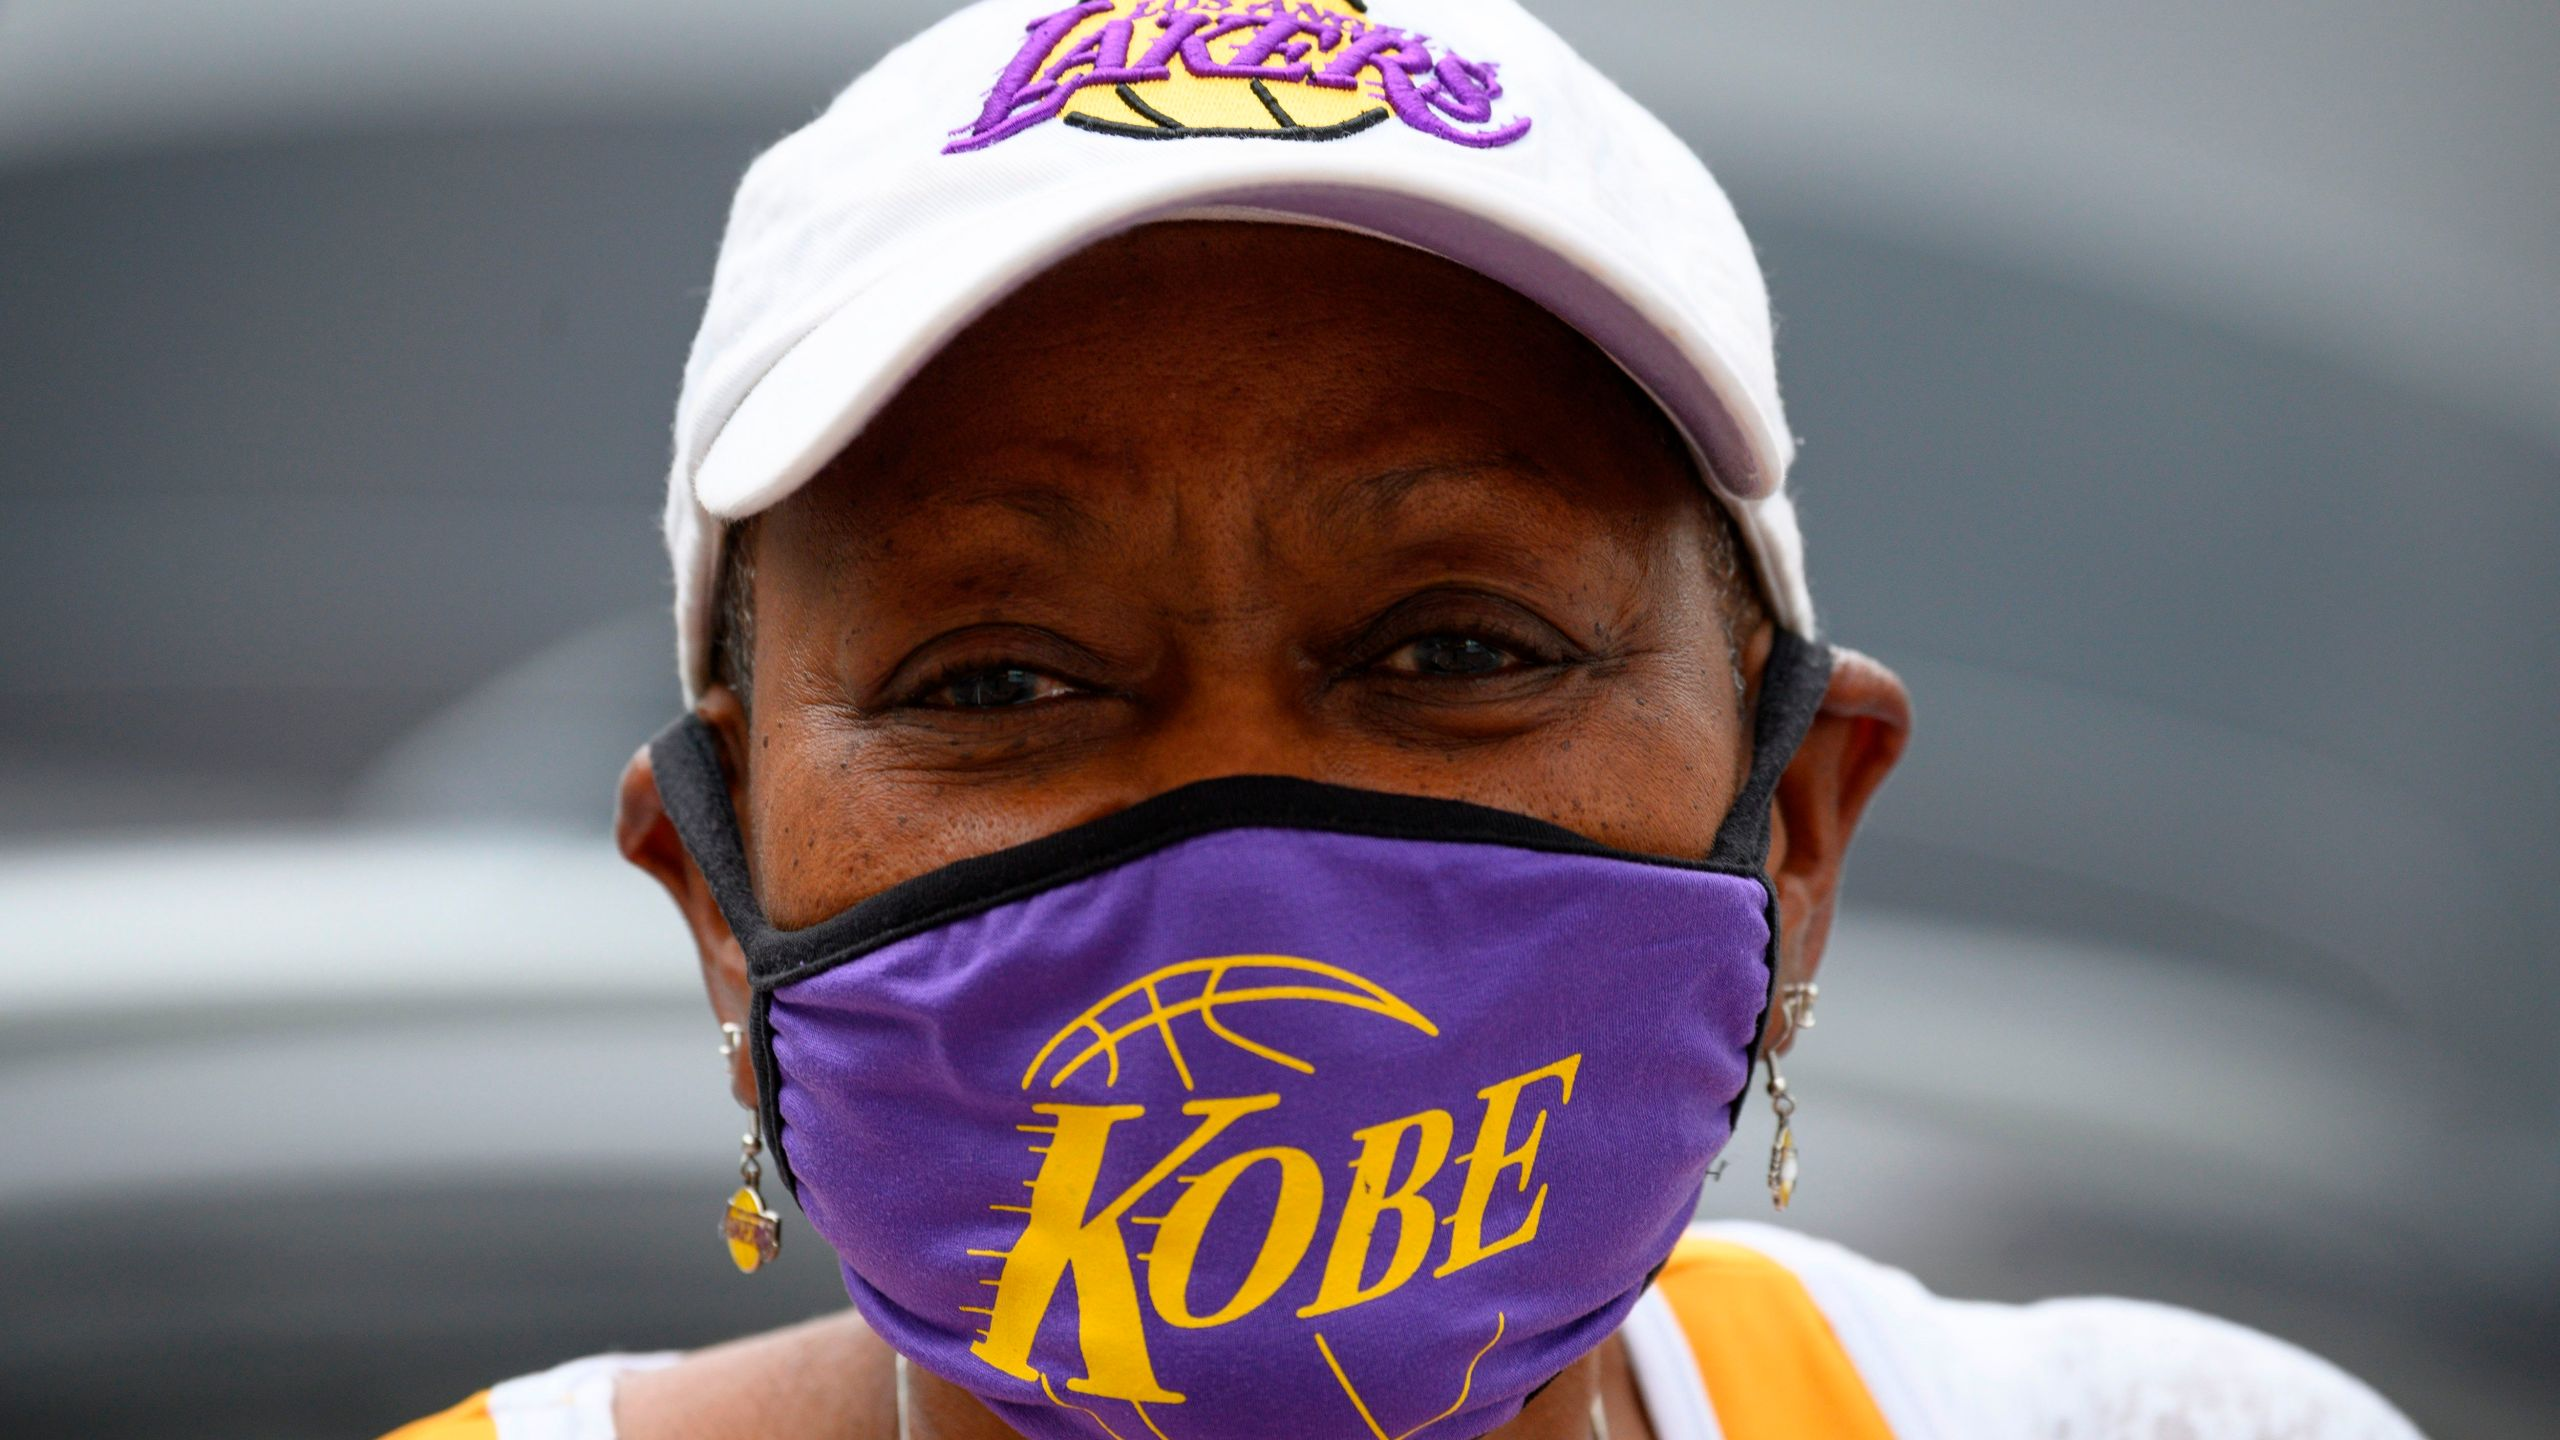 Carrie Harris Allen sells face masks, including the Kobe Bryant style she is wearing, in downtown Los Angeles on April 30, 2020. (Credit: Robyn Beck / AFP / Getty Images)